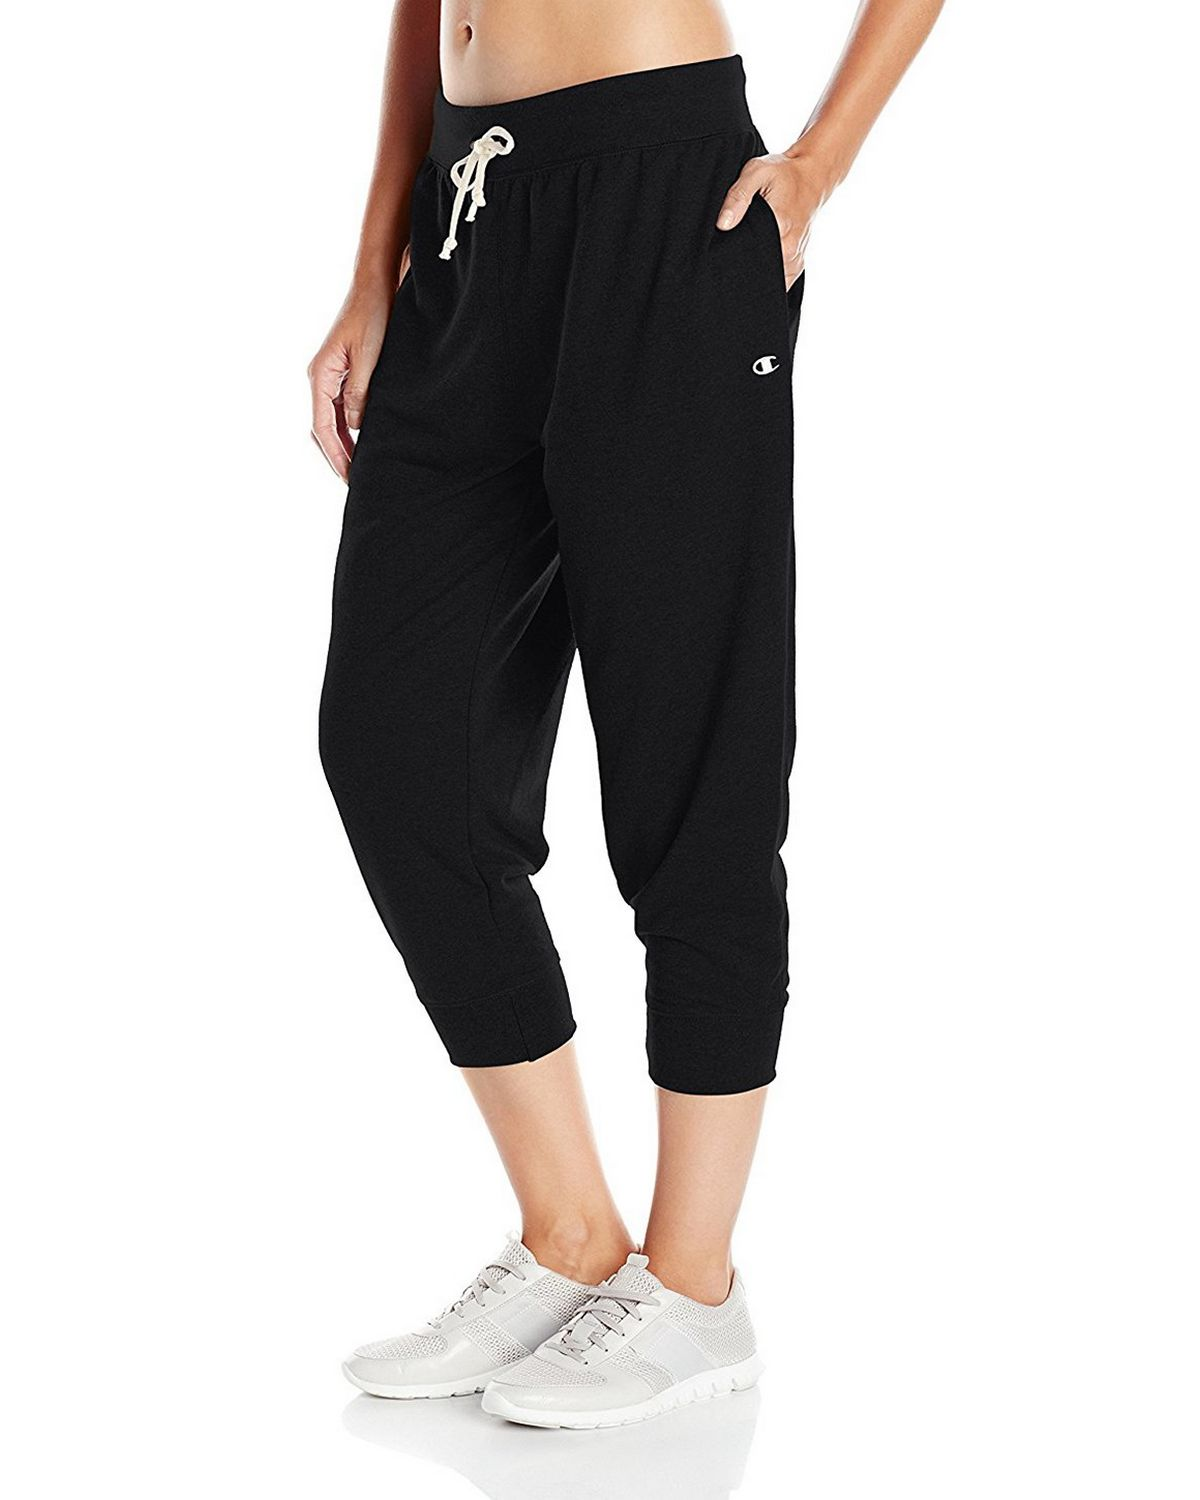 Champion M0945 Womens French Jogger Capris - Black - S M0945